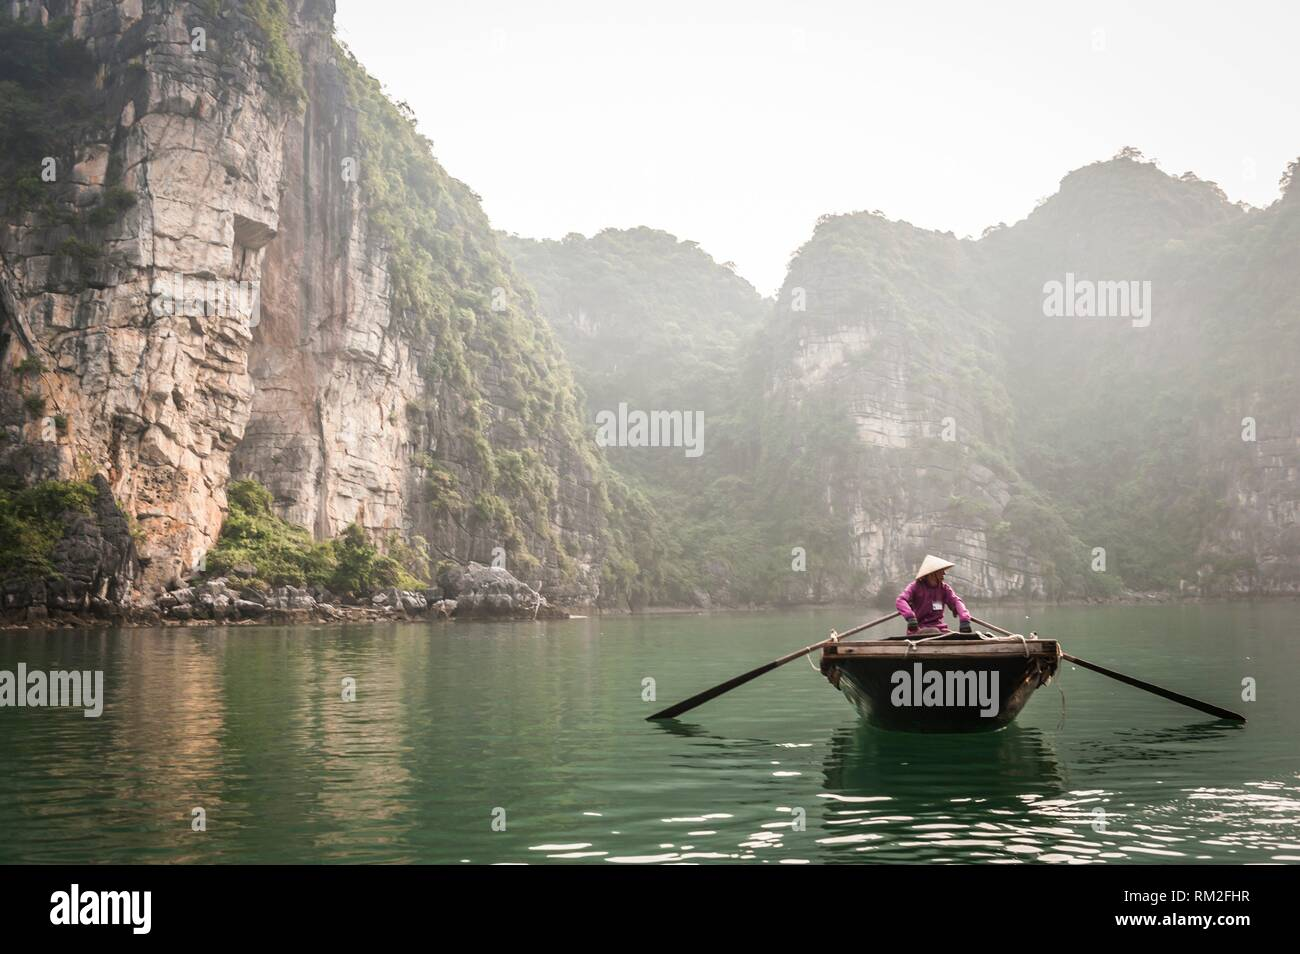 Vietnamese boatman in the karst landscape of Ha Long Bay, Quang Ninh Province, Vietnam. Ha Long Bay is a UNESCO World Heritage Site. Stock Photo